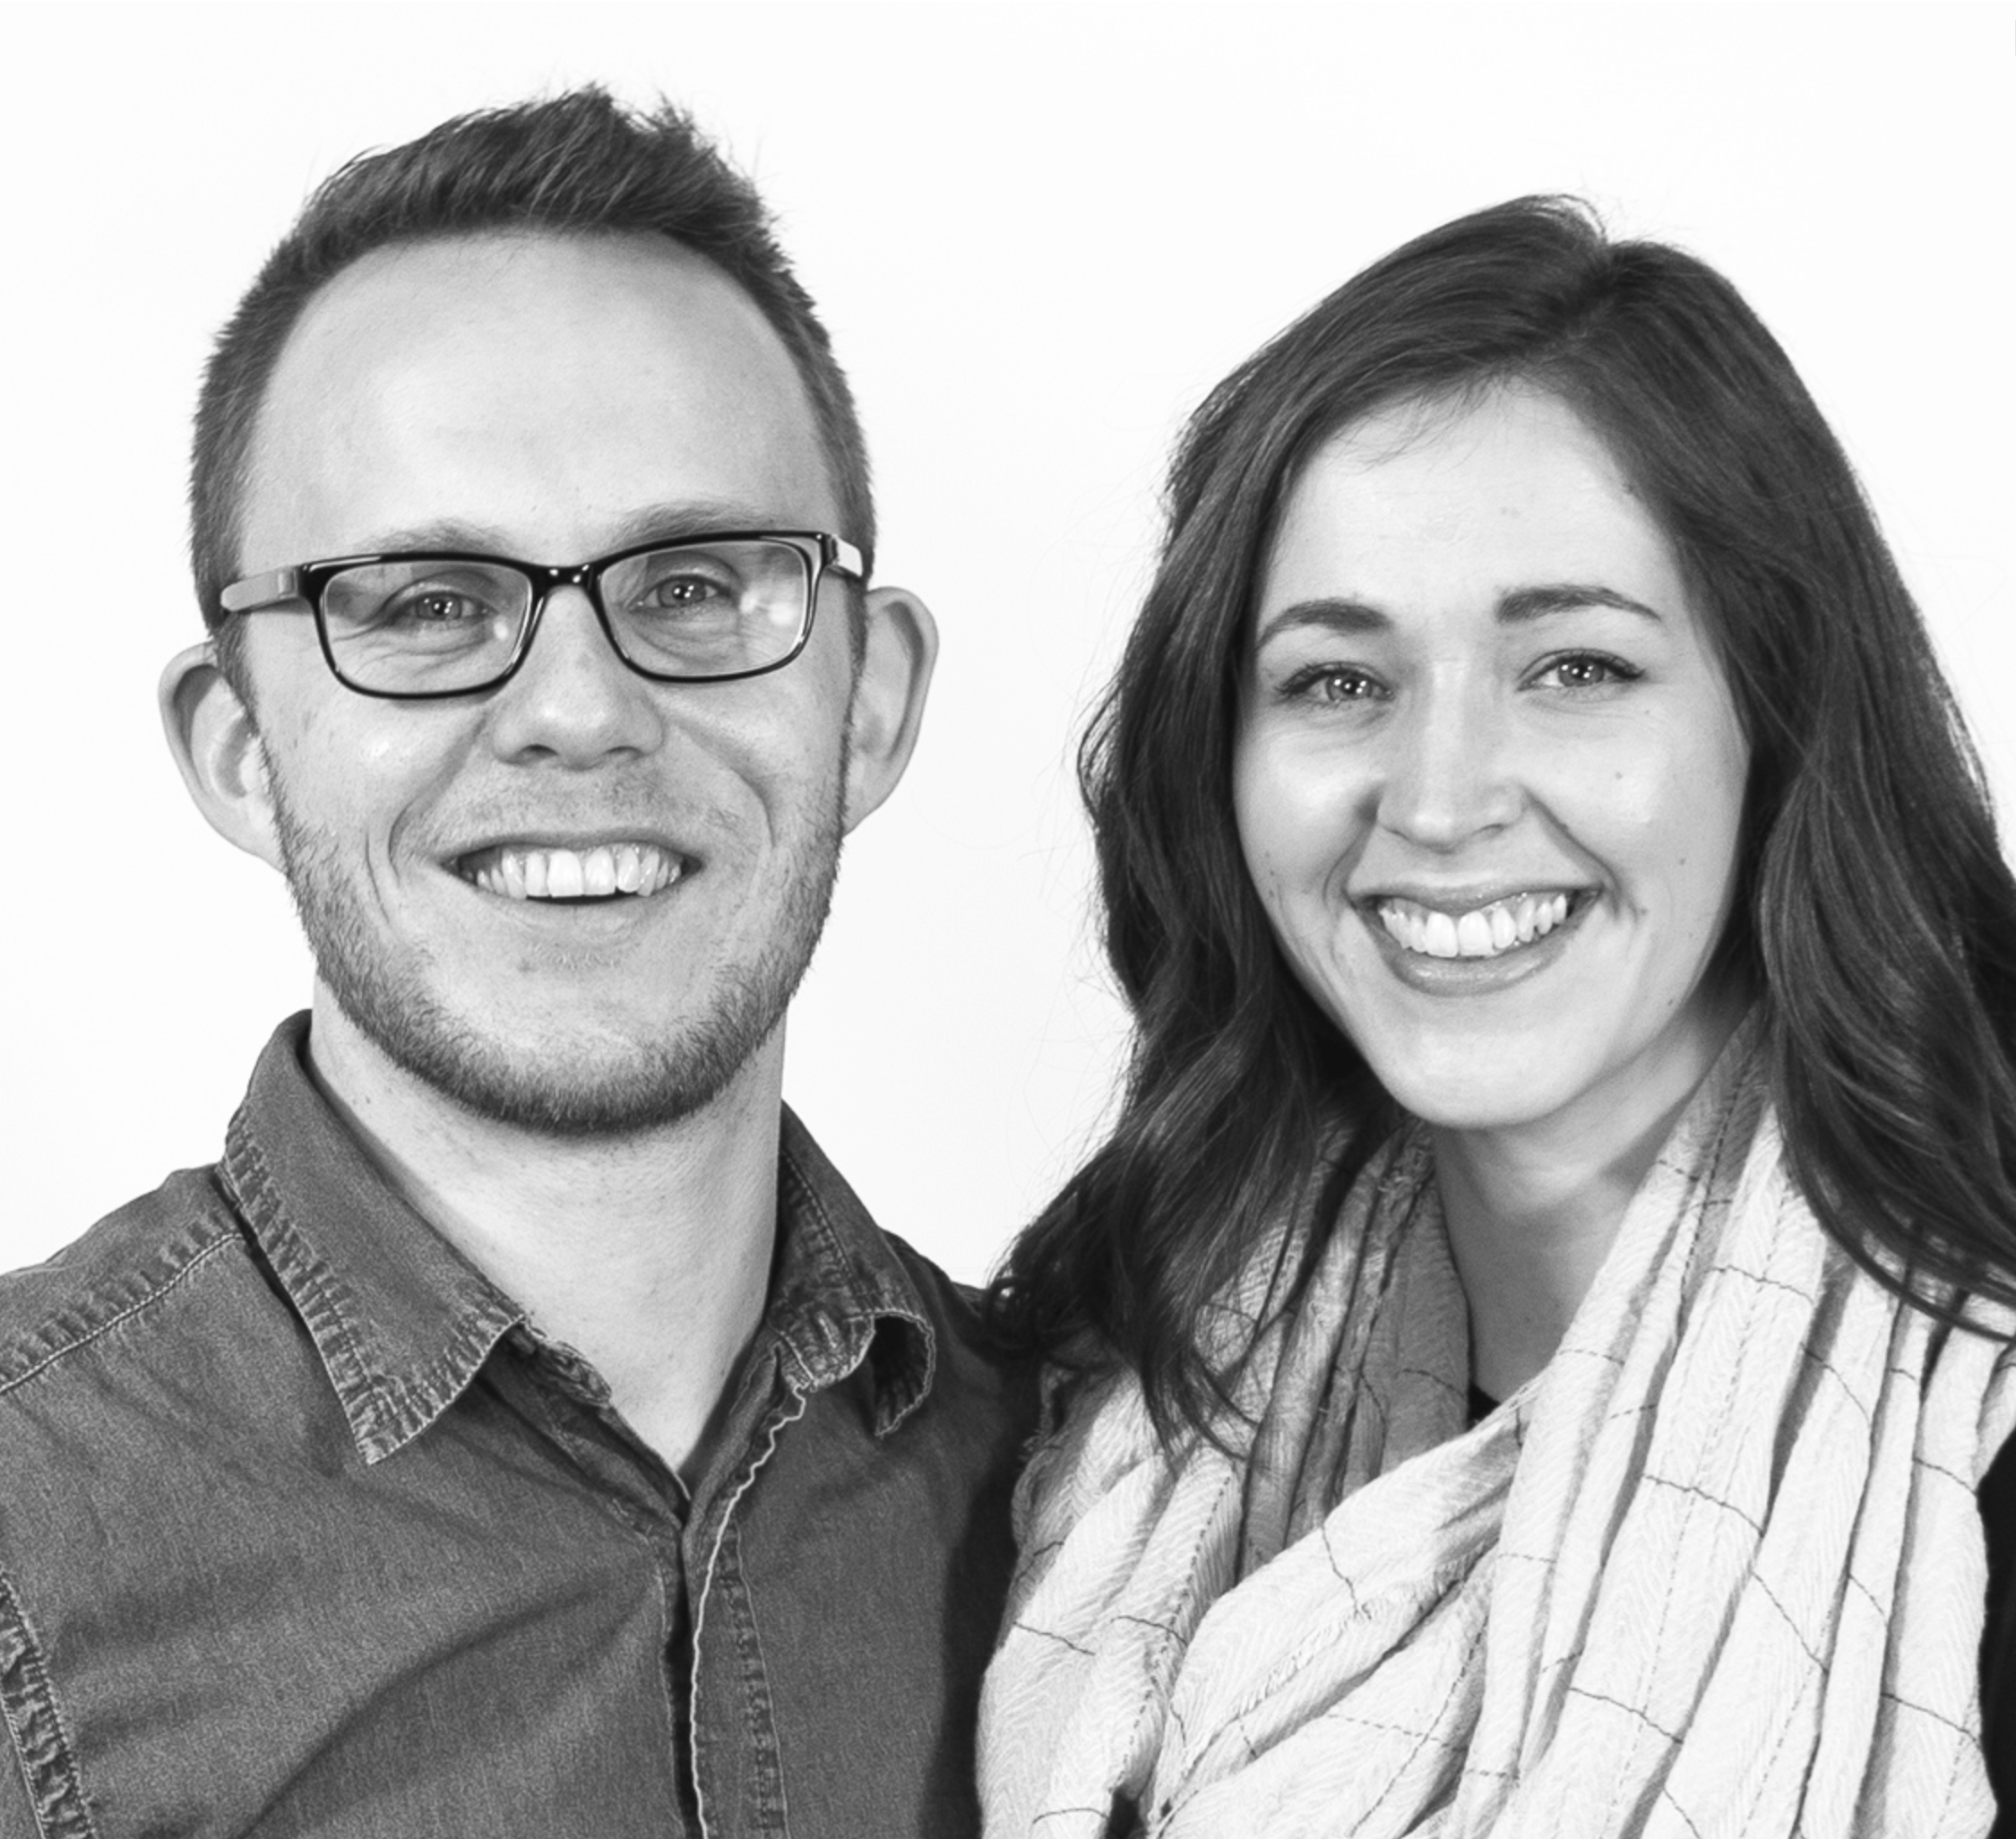 Bryan and Bonnie Pue -    Bryan & Bonnie Pue, backed by Pastor Mitch and HillCity Church, recently launched Union, a ministry dedicated to carrying truth about sexuality and healing to their nation of Canada and the world.